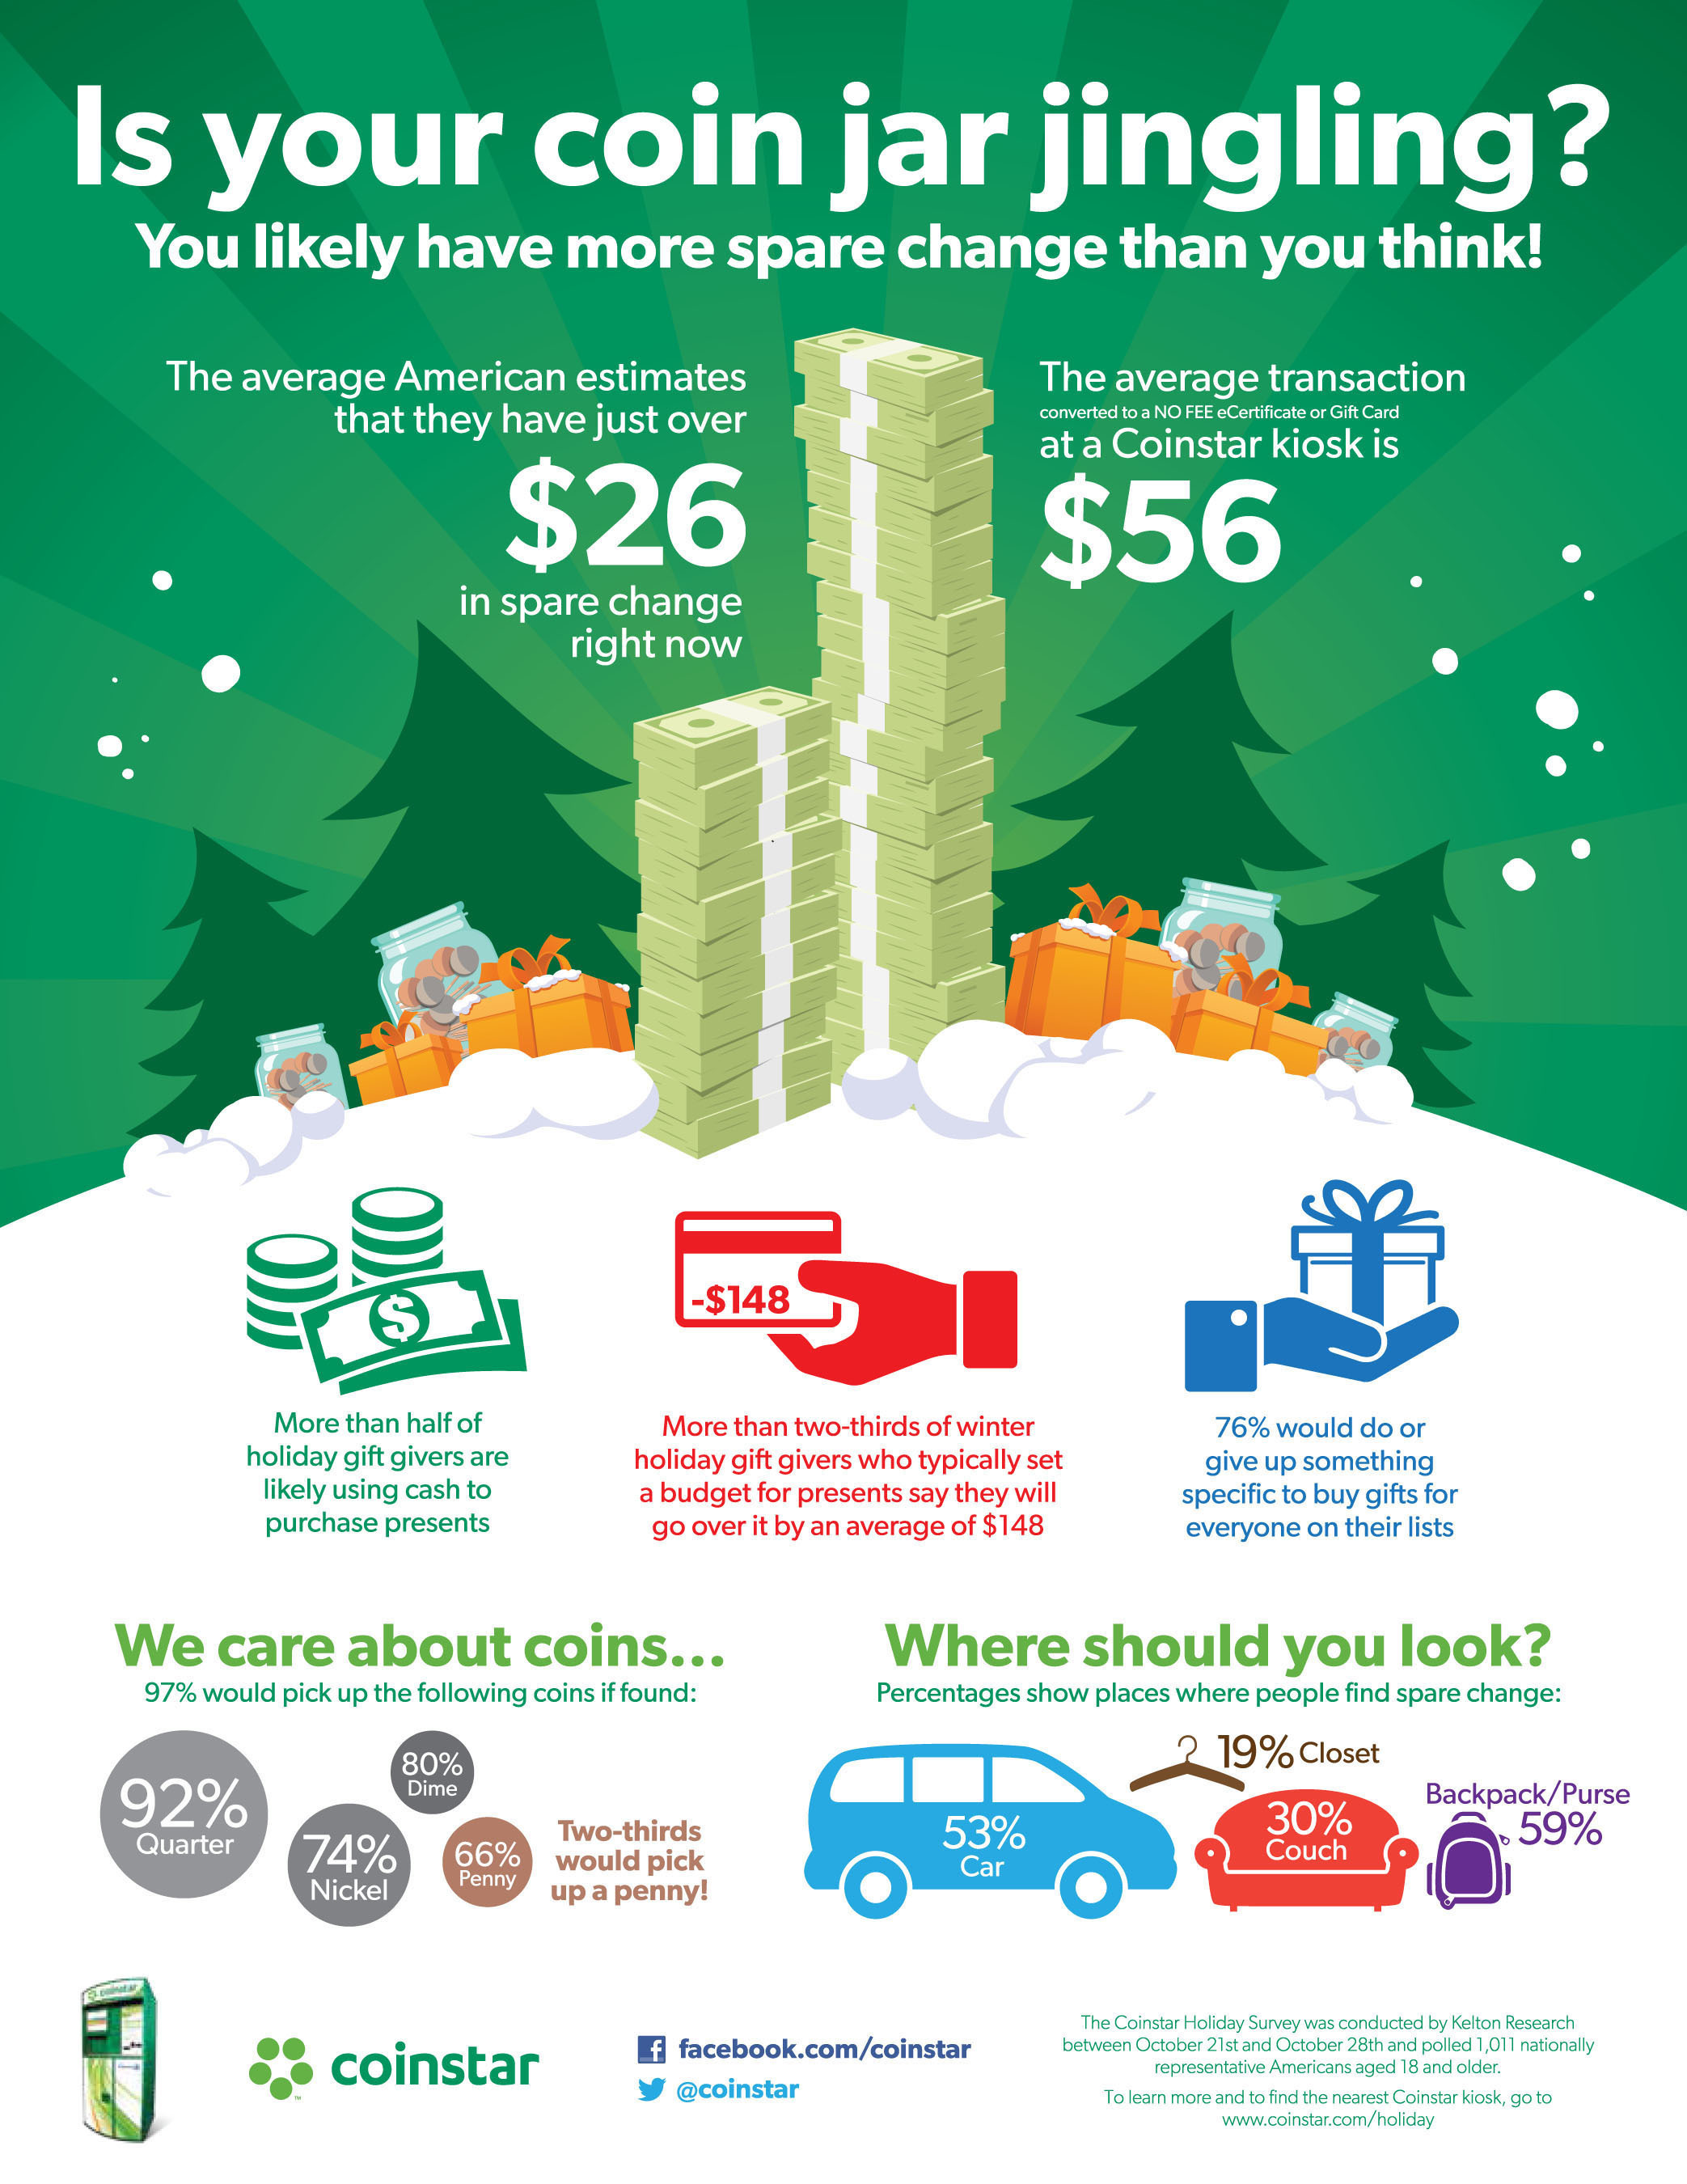 As the holiday shopping season draws near, a new survey from Coinstar found that Americans may have more money than they think stashed in piggy banks or junk drawers and weighing down purses or backpacks. Survey respondents estimate that they have a little more than $26 in spare change, but according to Coinstar's nationwide kiosk data, the average amount that customers convert to a no-fee eCertificate and/or gift card when they cash in their coins is $56 -- more than double what survey respondents think they have hidden away at home. To ...